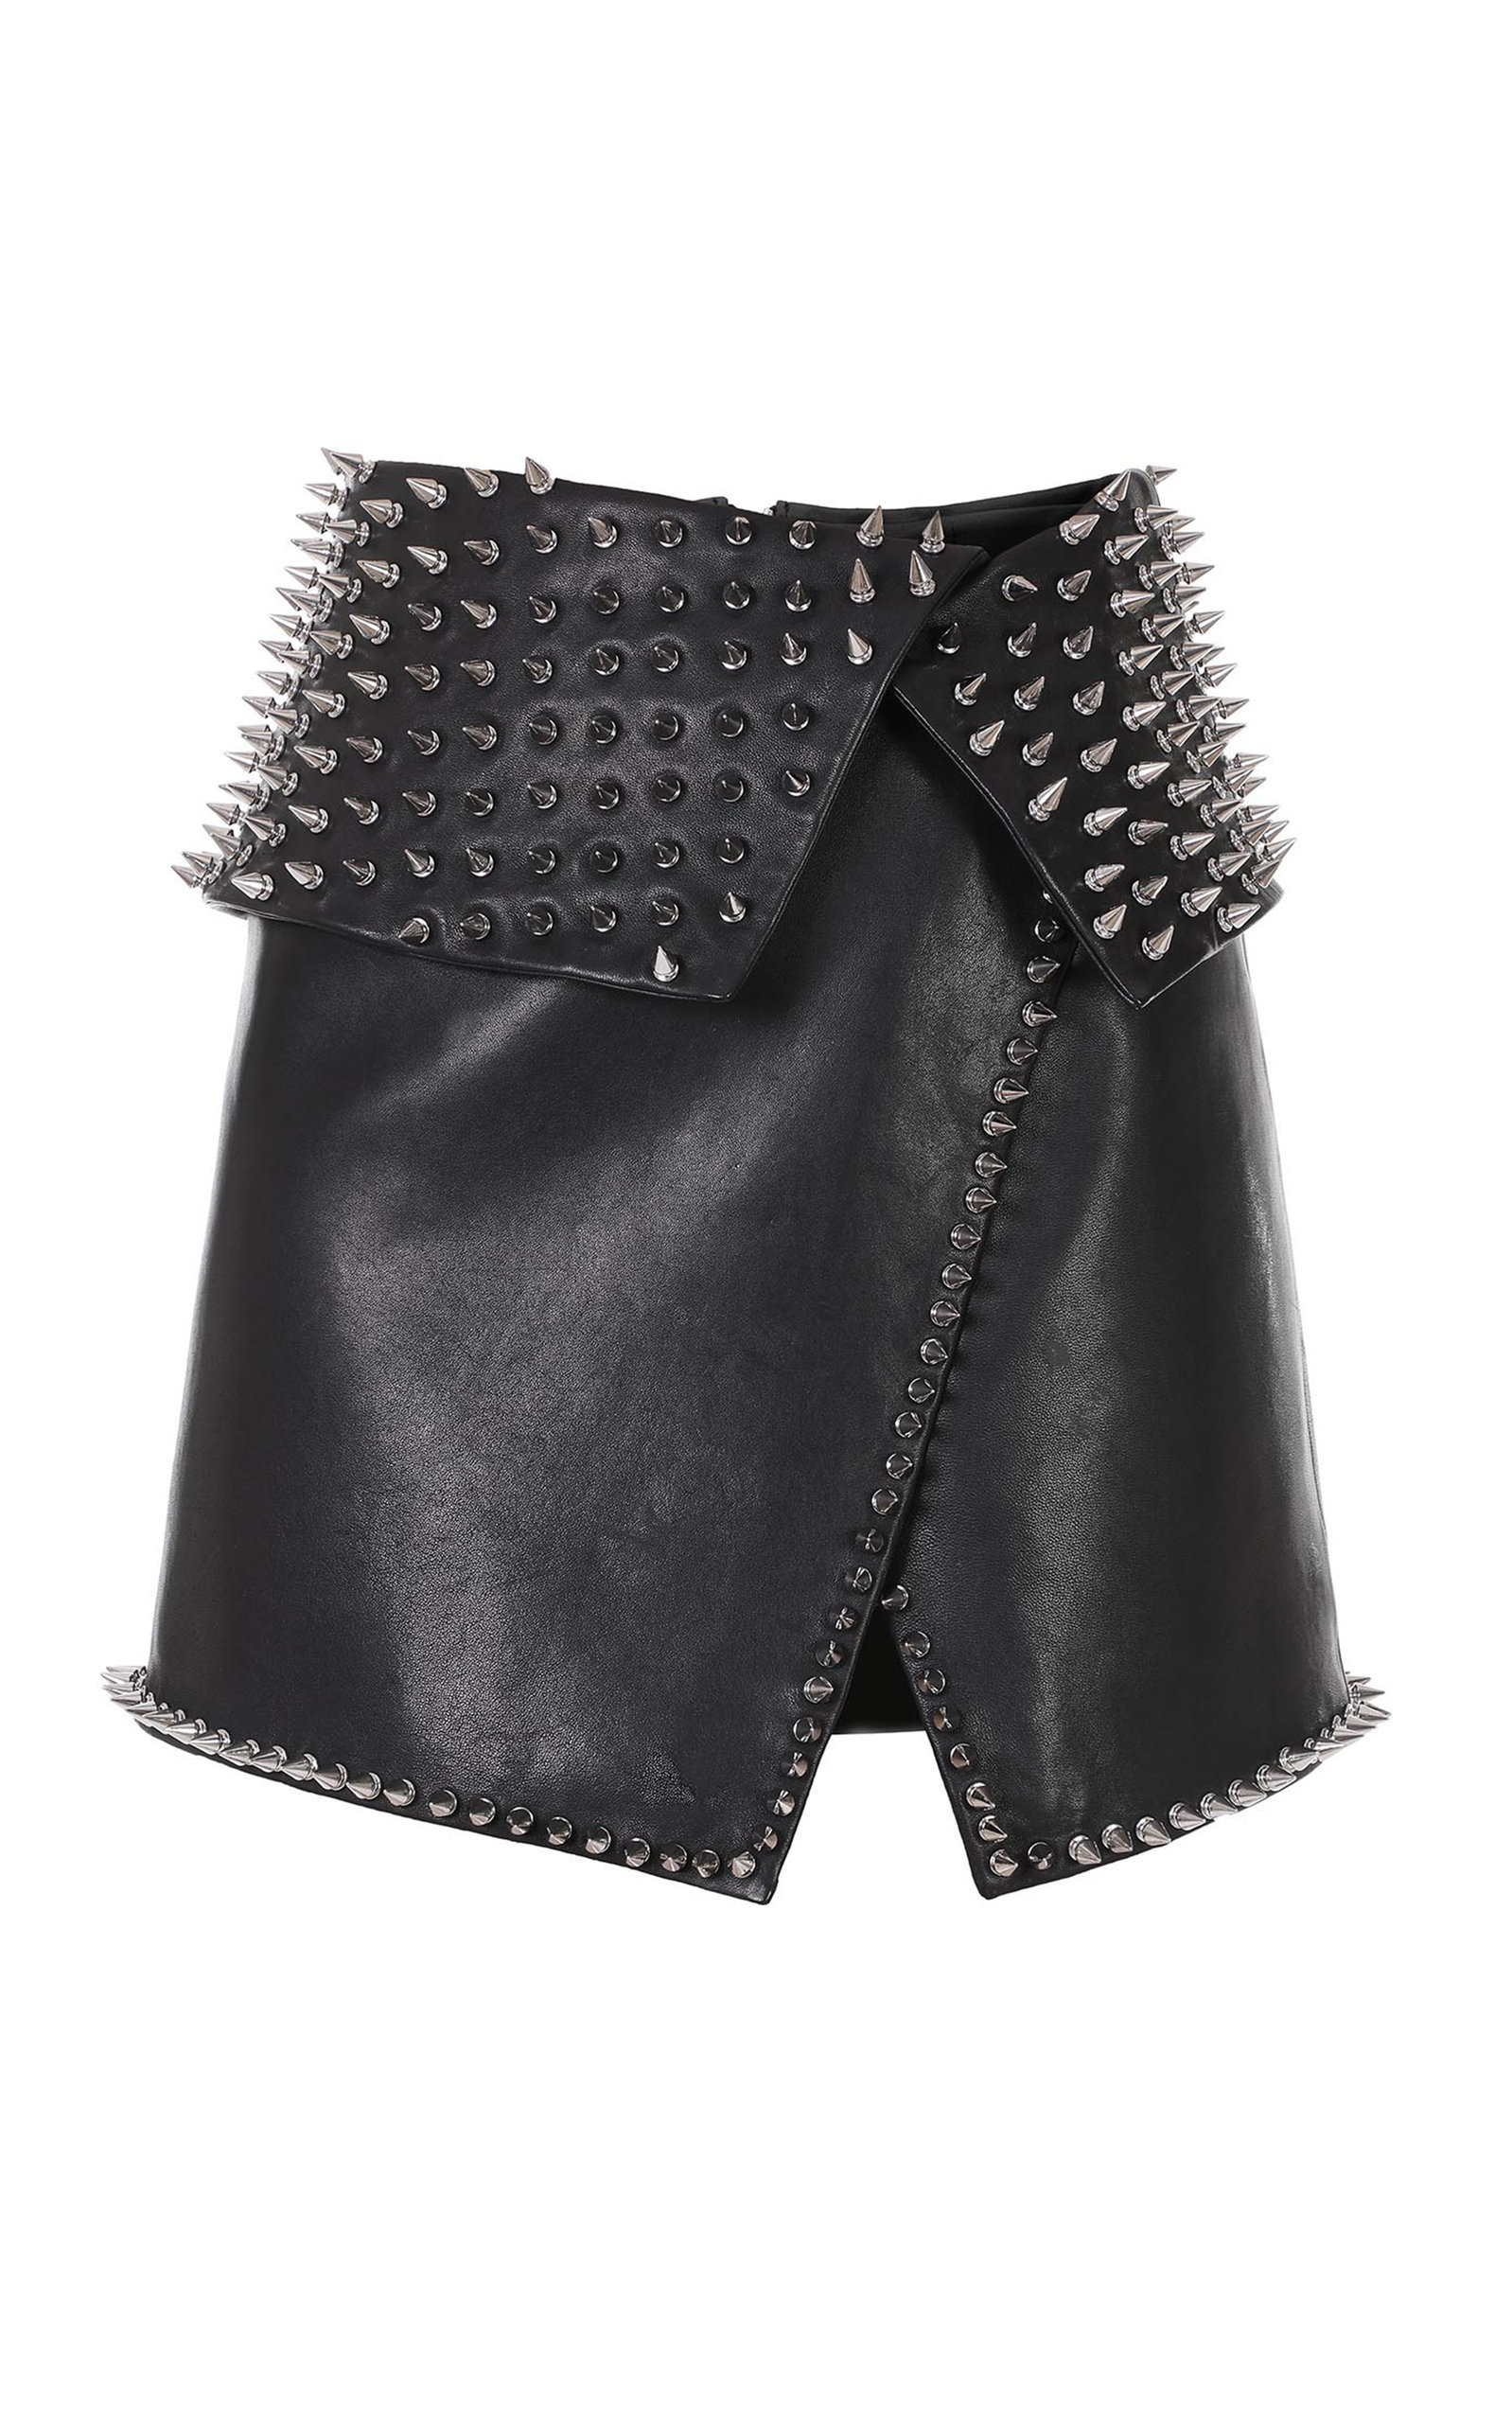 Spiked Wrap Leather Mini Skirt